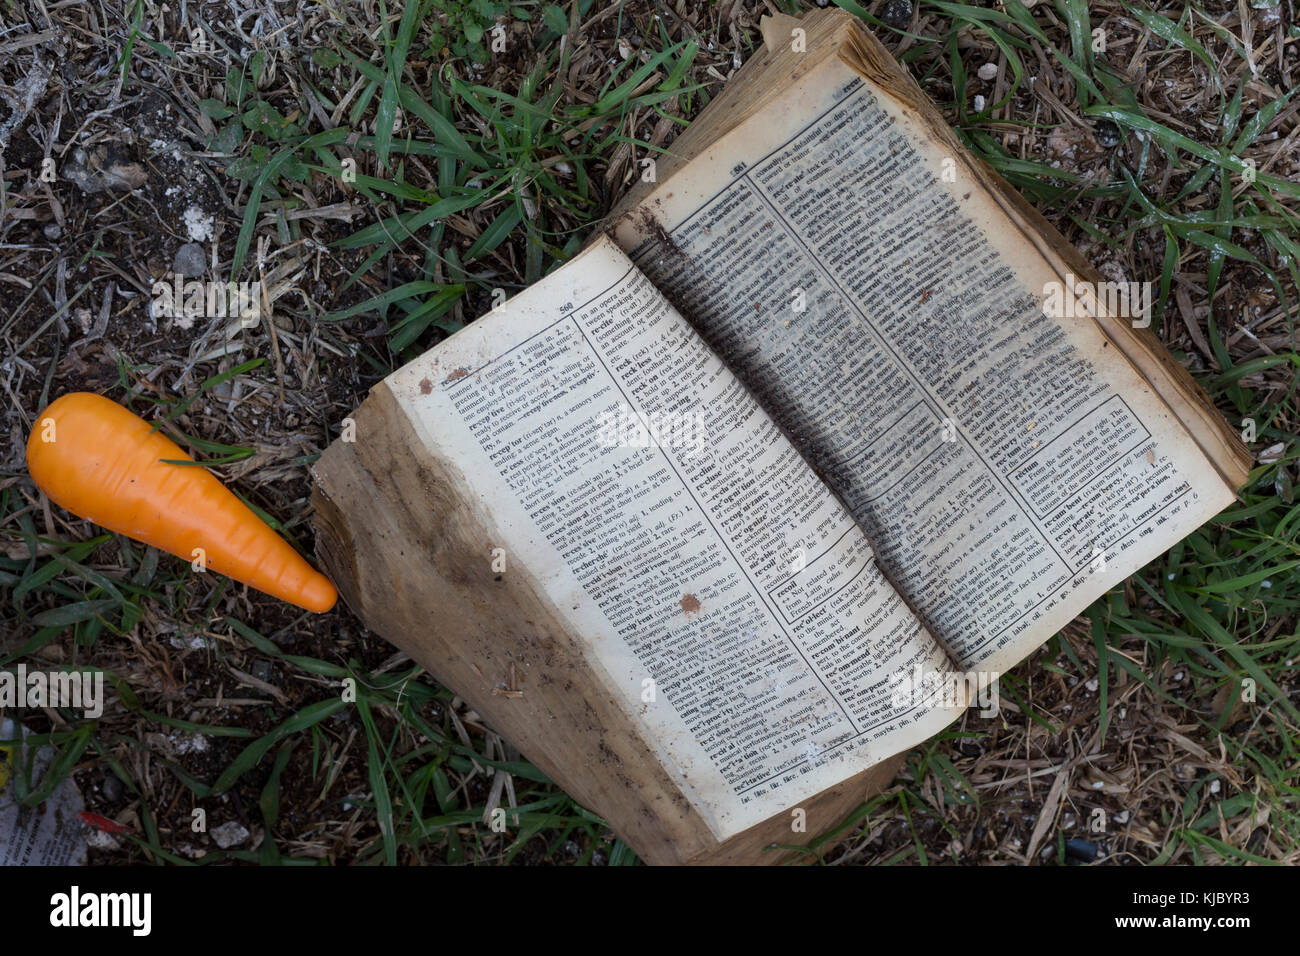 Humble, Texas - A waterlogged dictionary and a toy carrot are among the debris thrown out after the Mana Family - Stock Image